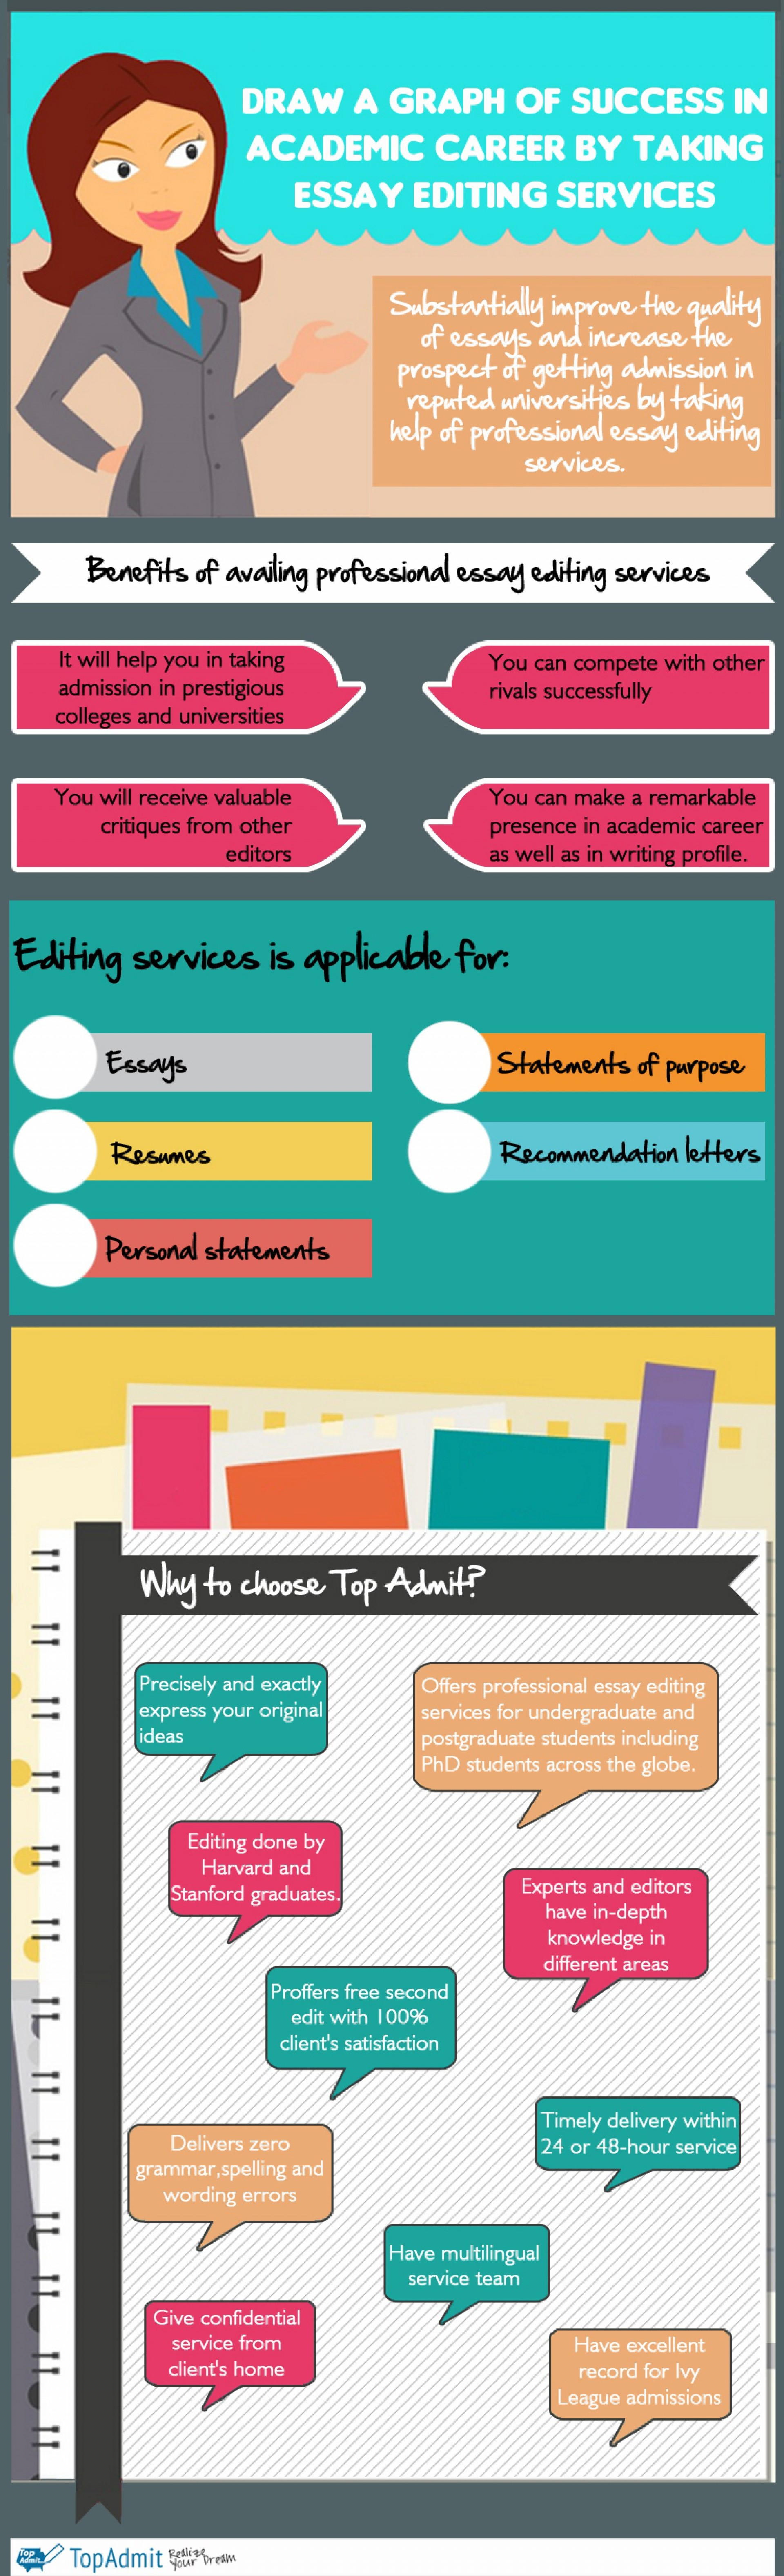 013 Essay Example Draw Graph Of Success In Academic Career By Taking Editing Services 5359fab34d122 W1500 Online Top Editor College Paper 1920